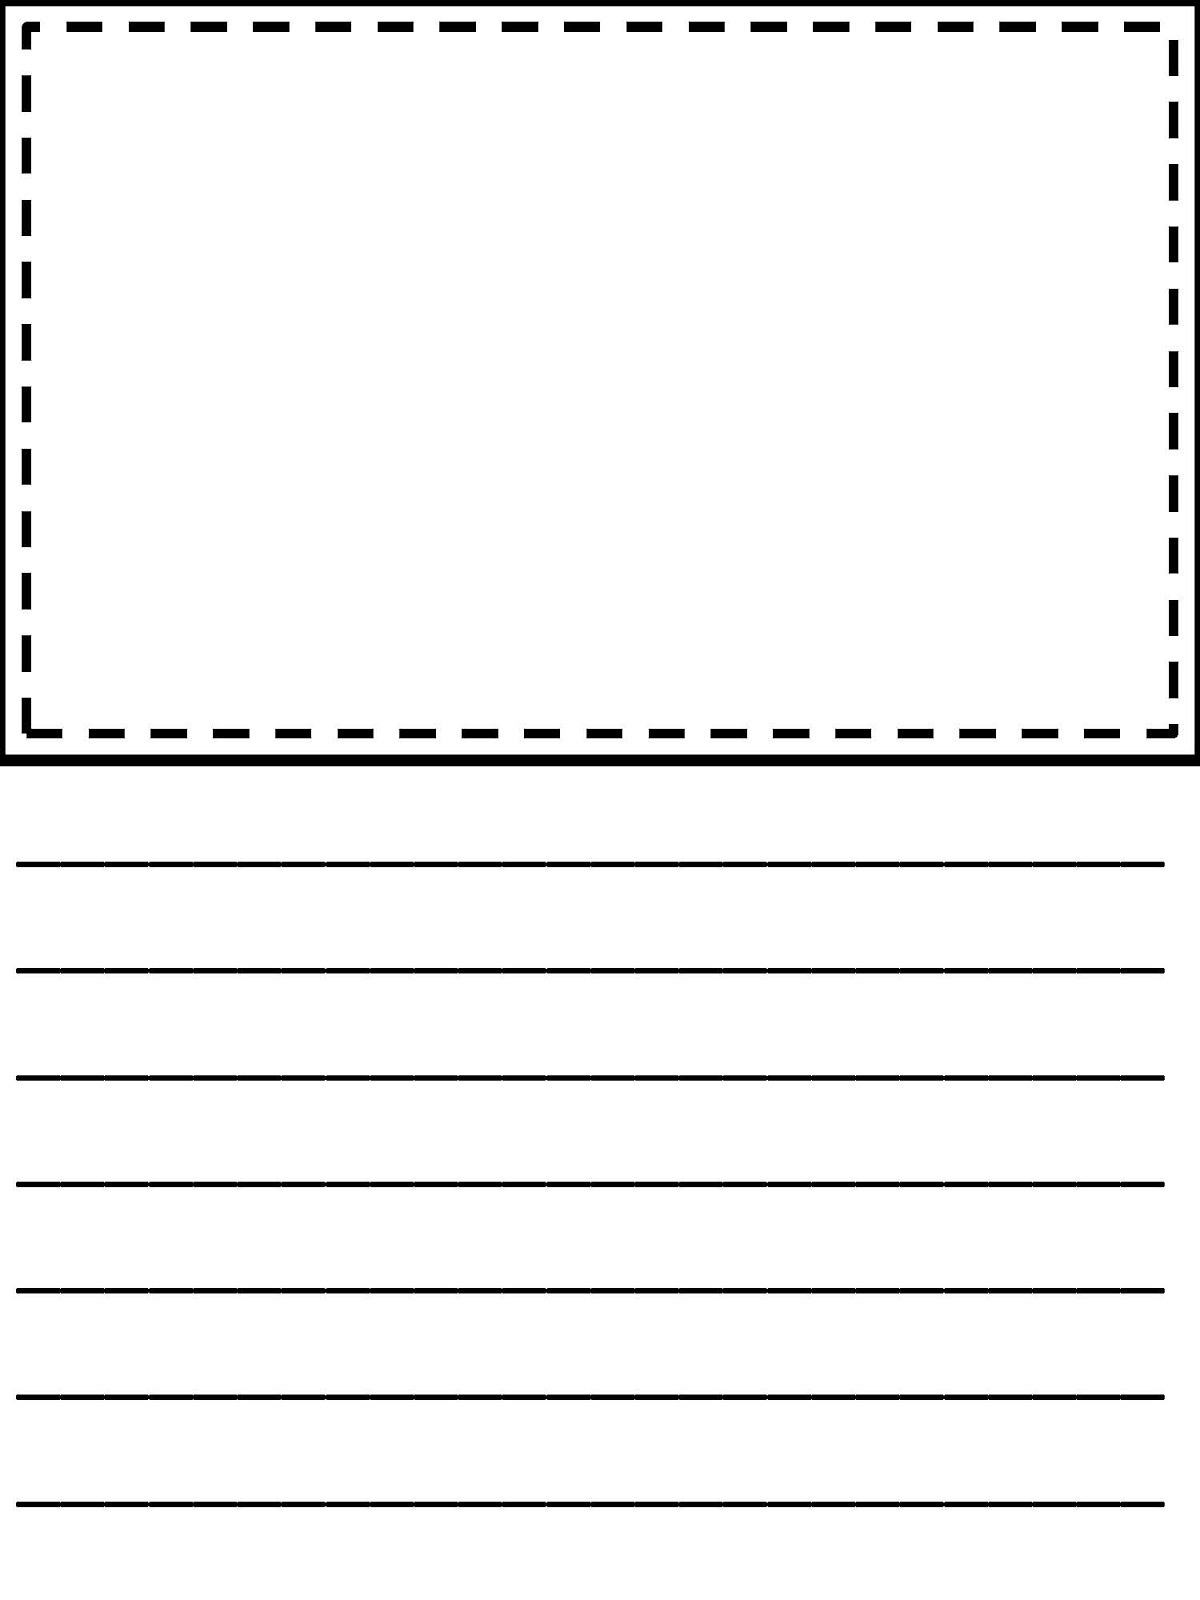 free printable newspaper template for students - free printable first grade writing paper with picture box